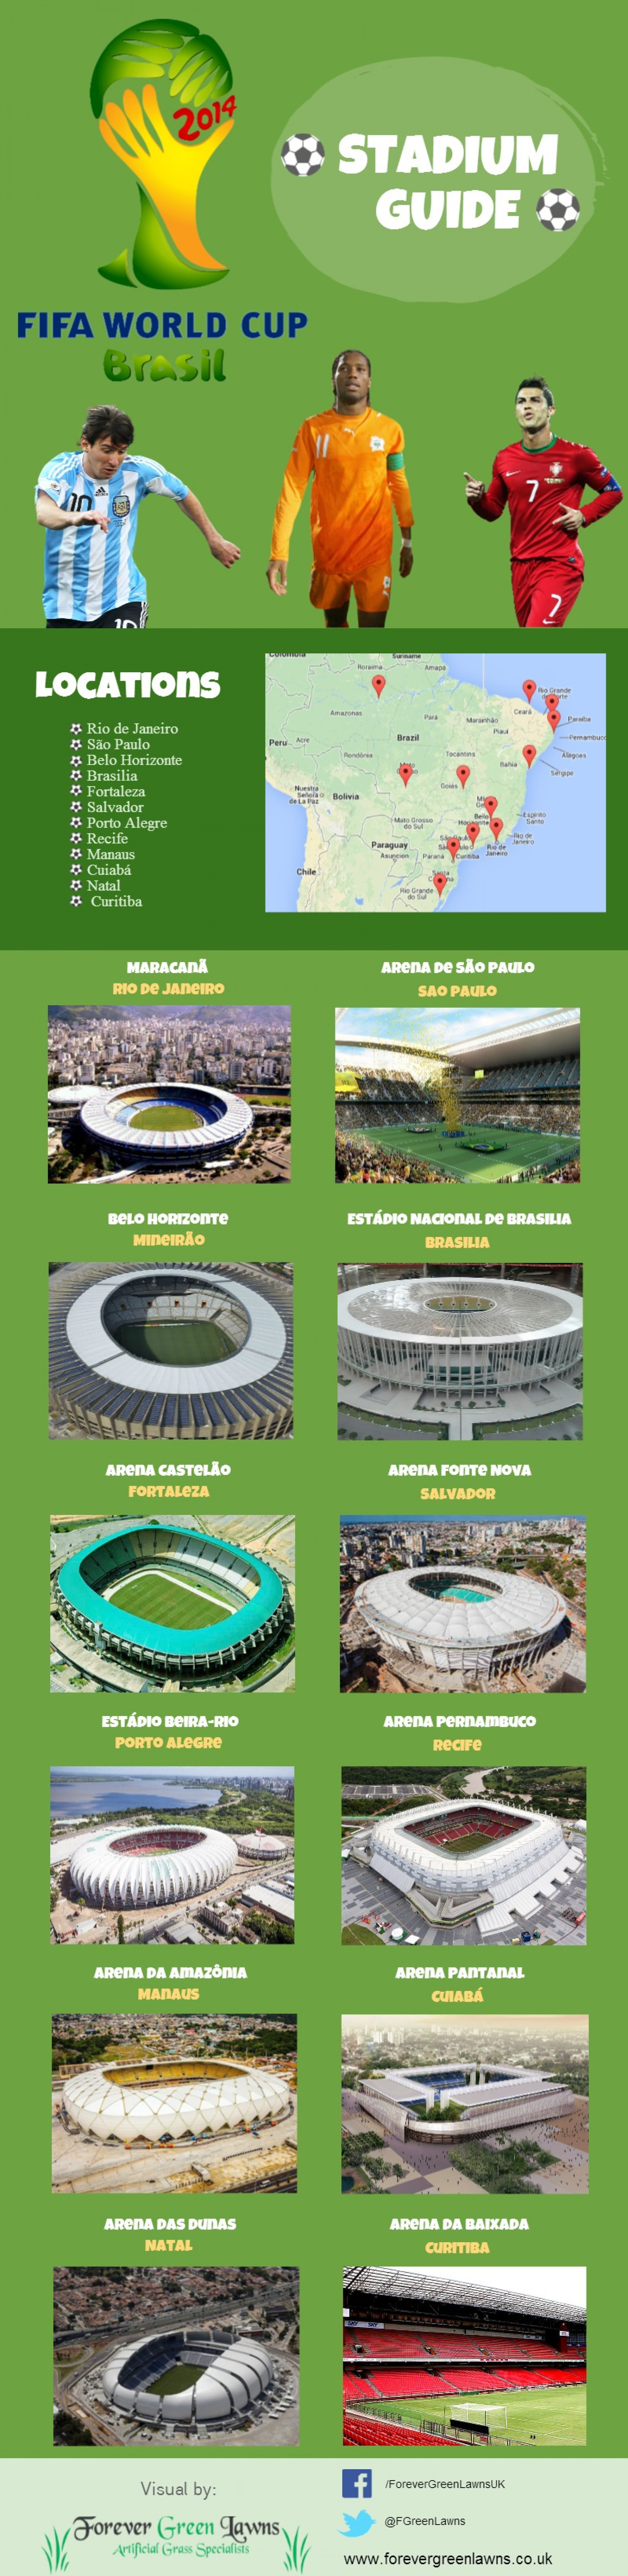 World Cup 2014 Stadium Guide  Infographic